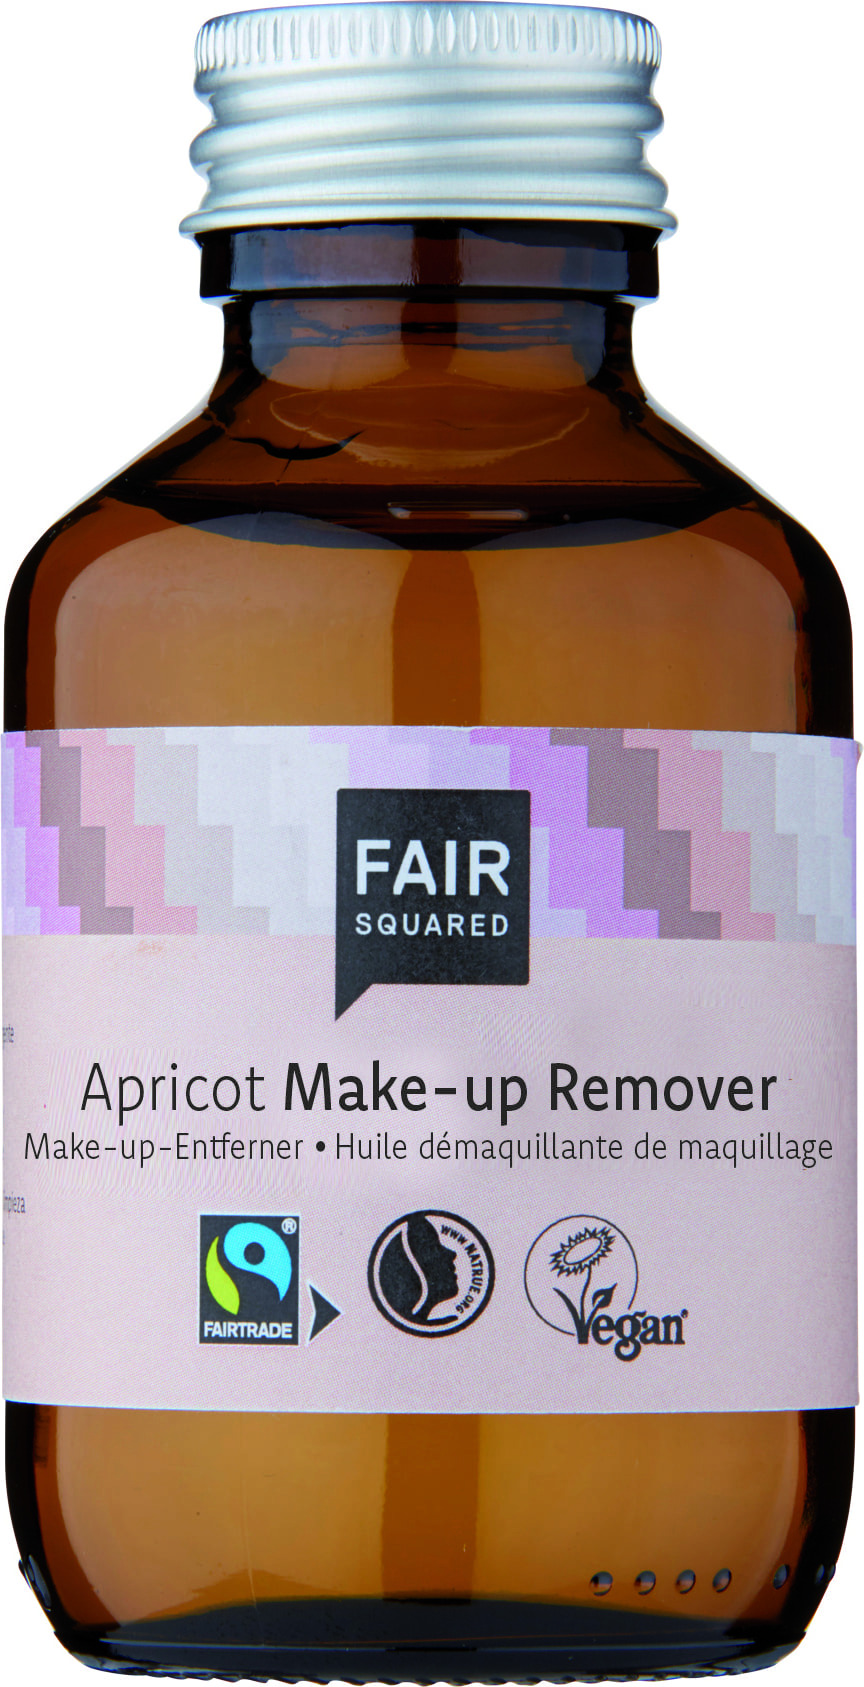 FAIR Squared Make-up Remover - 100 ml von FAIR Squared